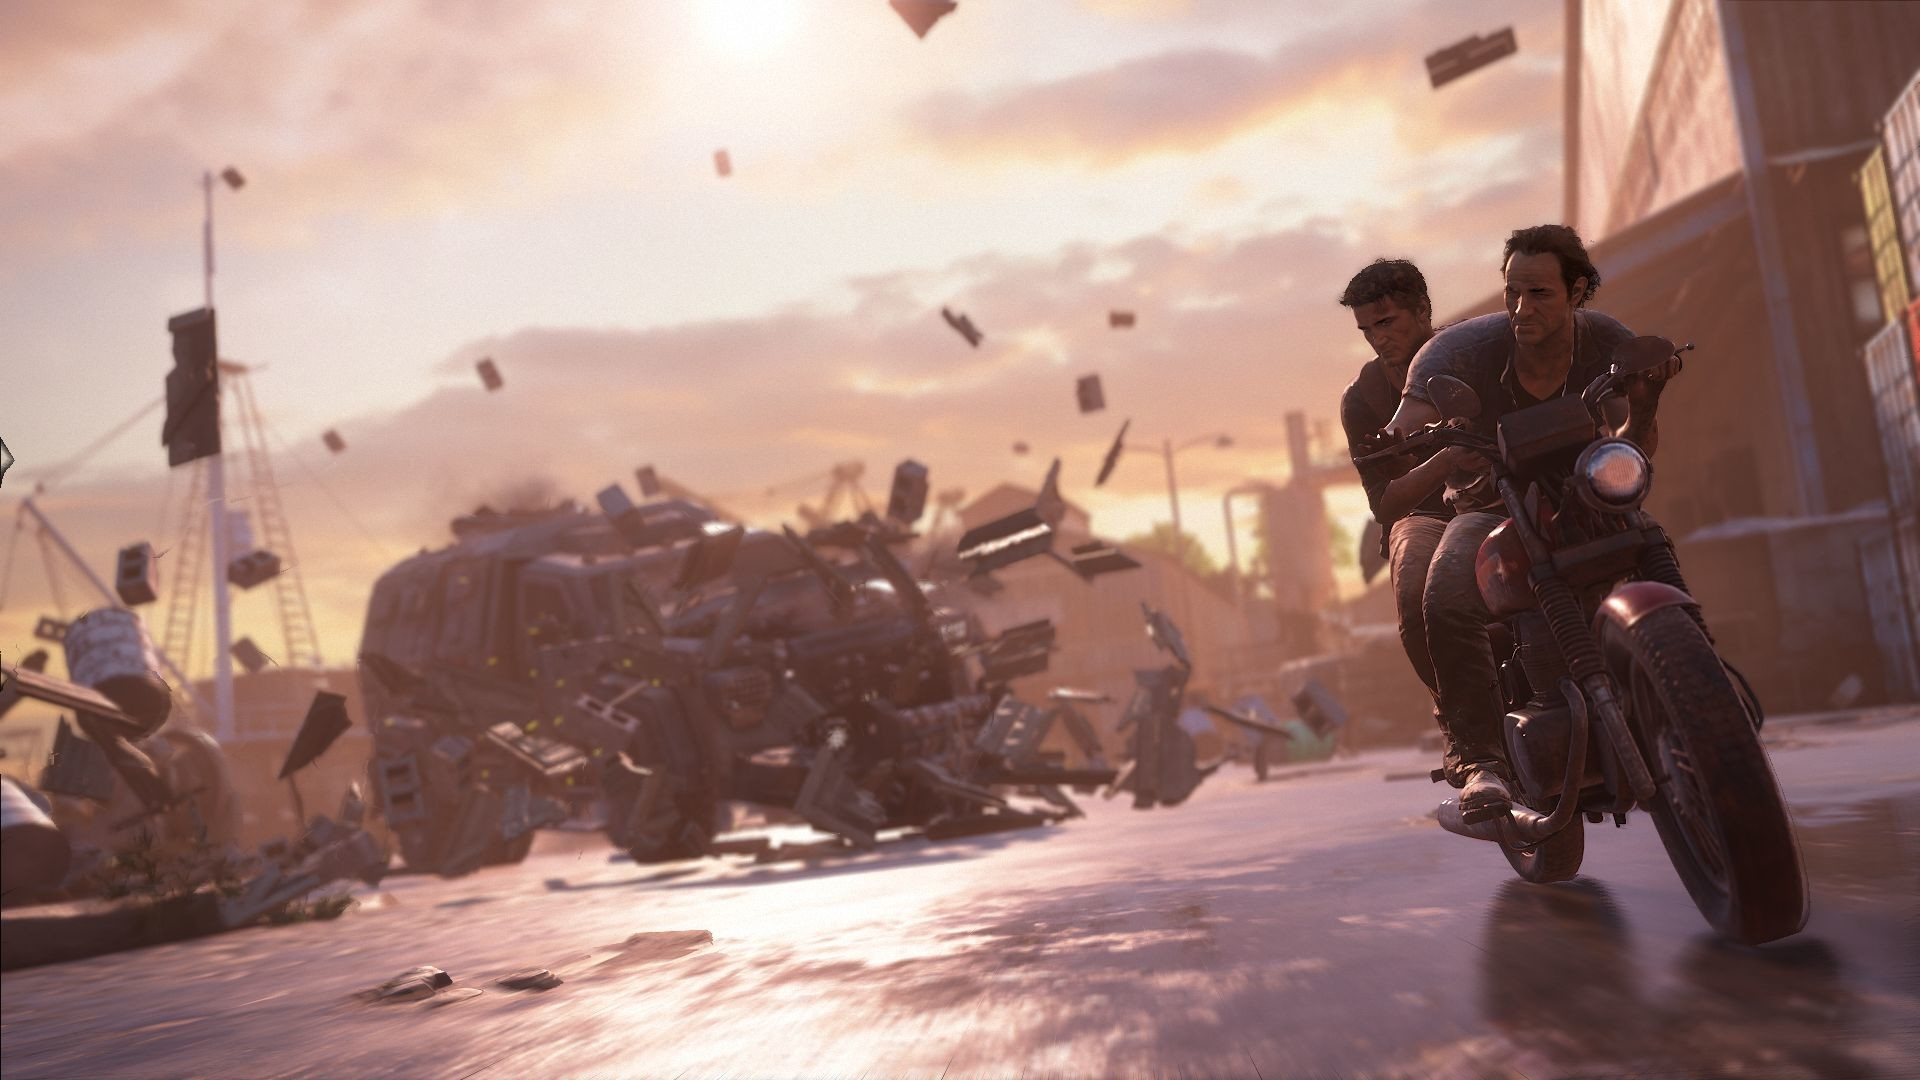 PS4 Exclusive Uncharted 4: A Thief's End Gets Some Awesome 1080p Screenshots